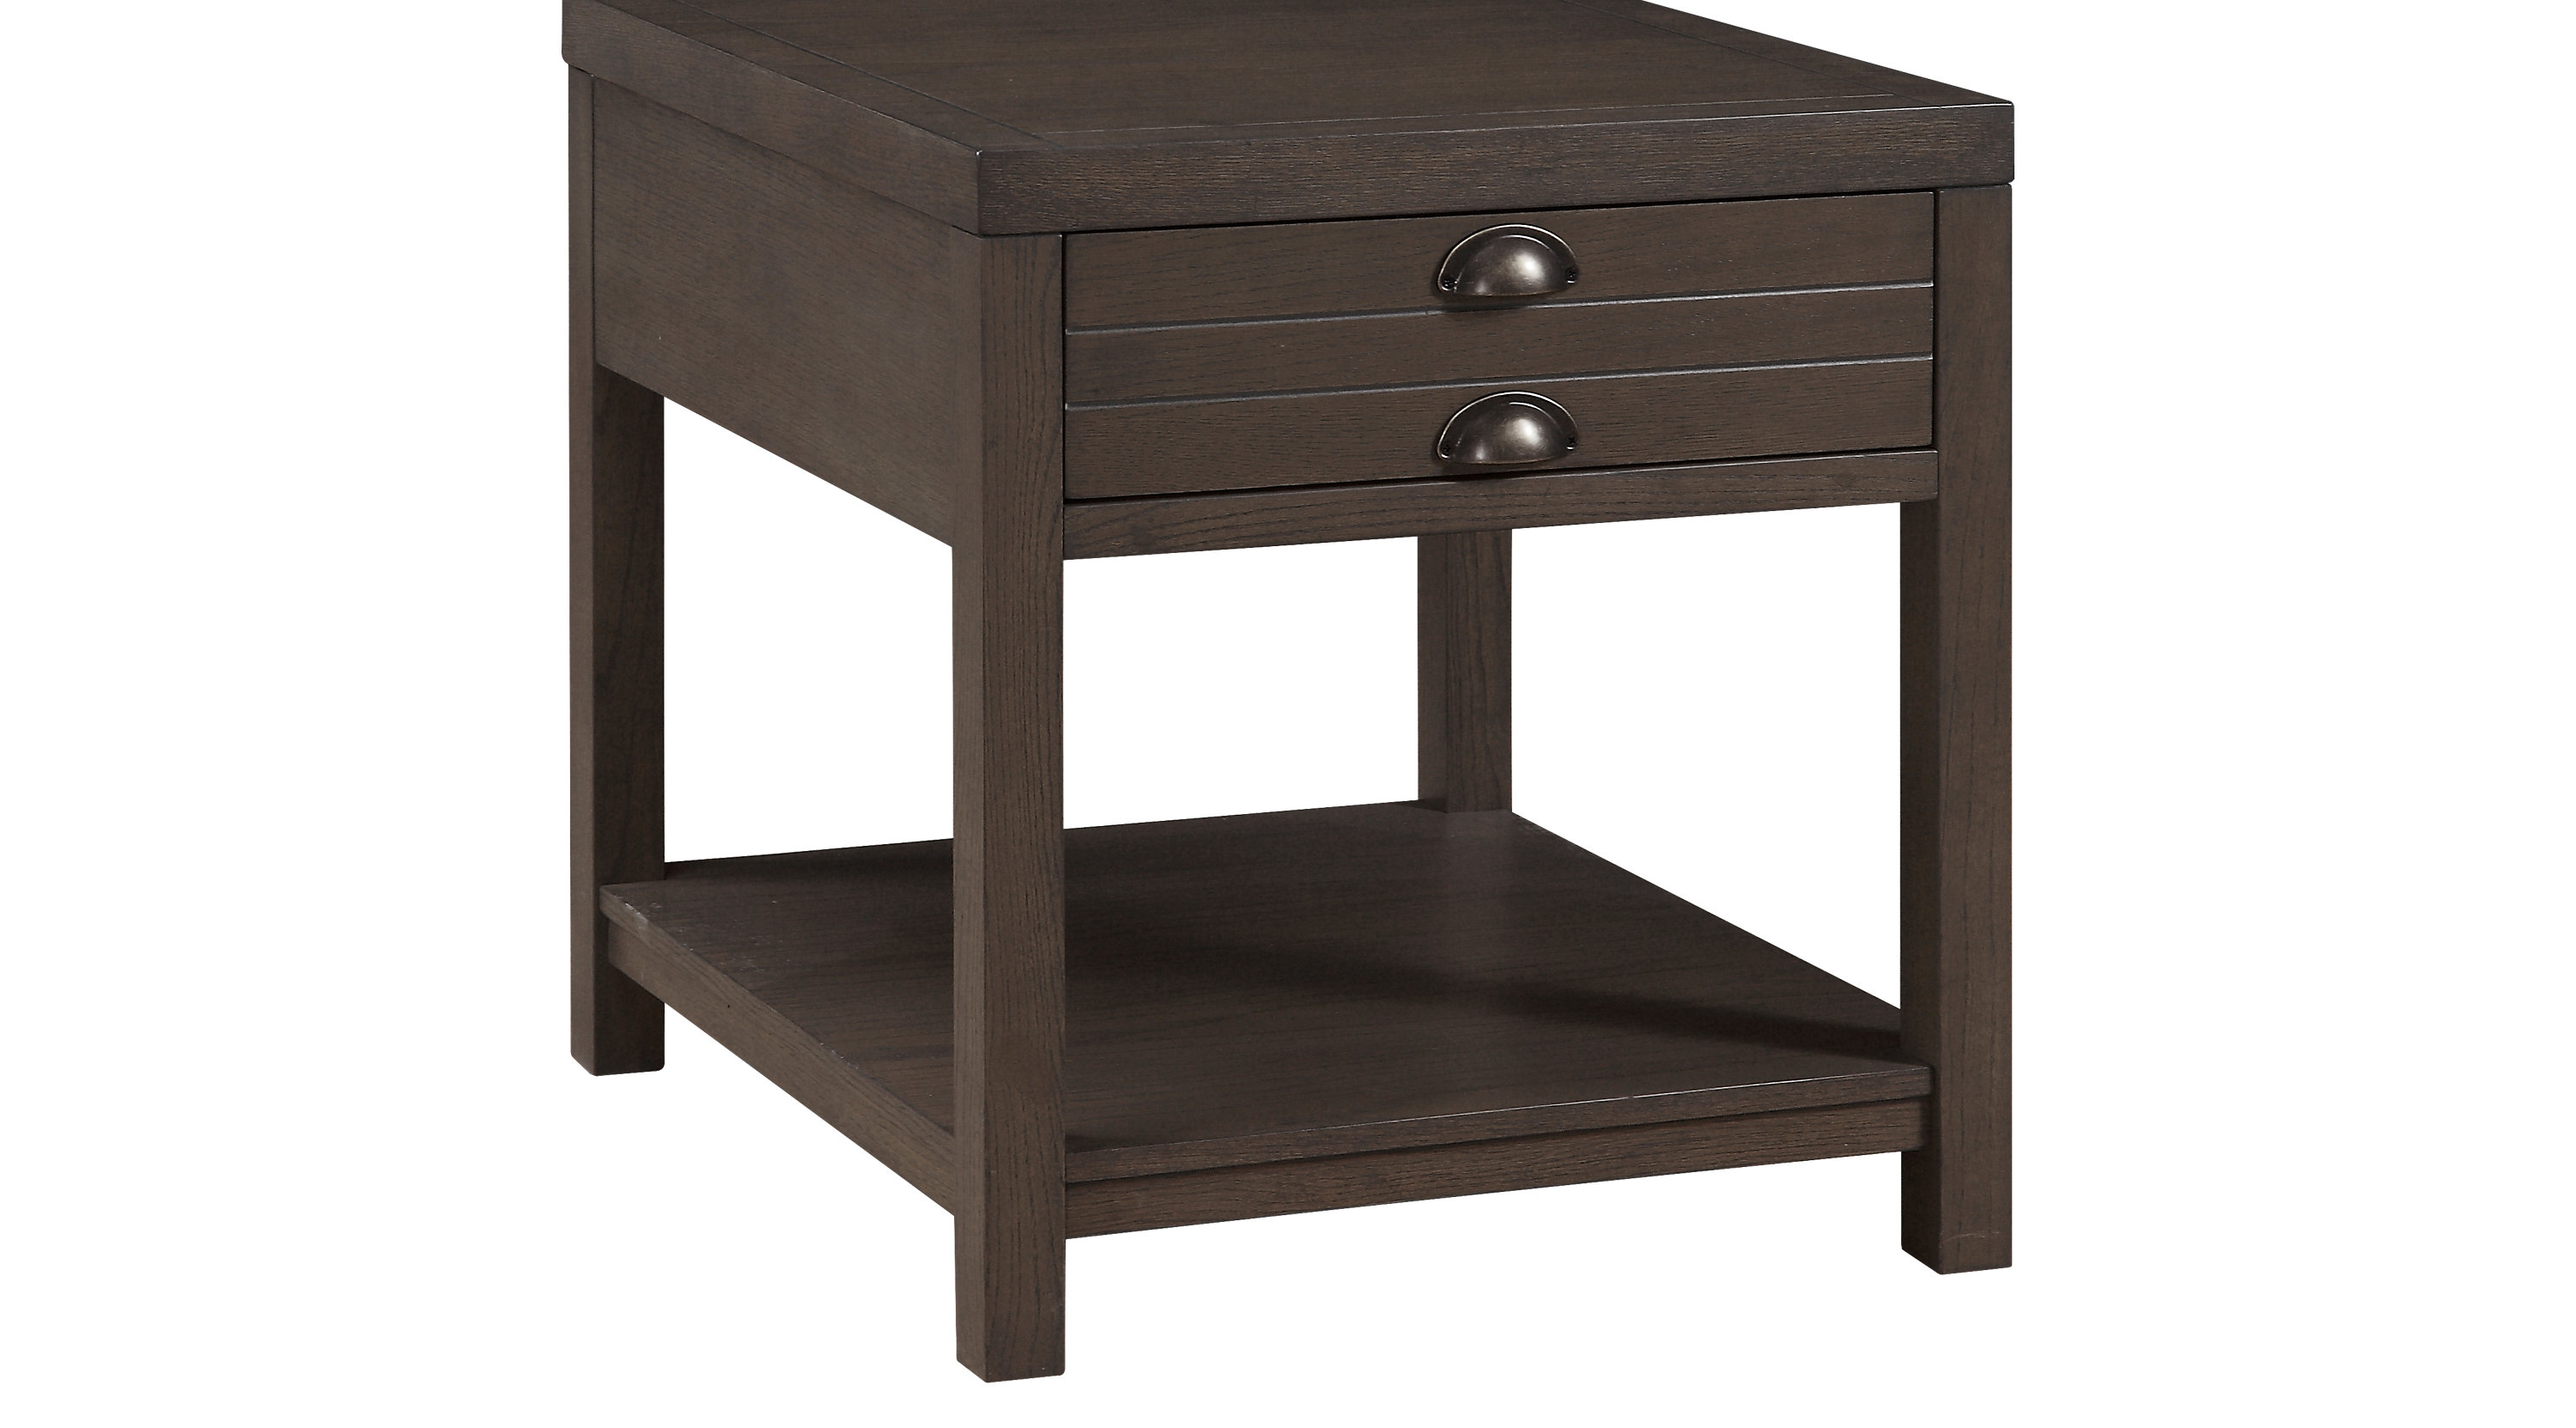 end table height how tall should mandal brown low accent entry benches furniture upholstered chair evans head rustic lamps antique drum three legged ikea wall storage bins wooden